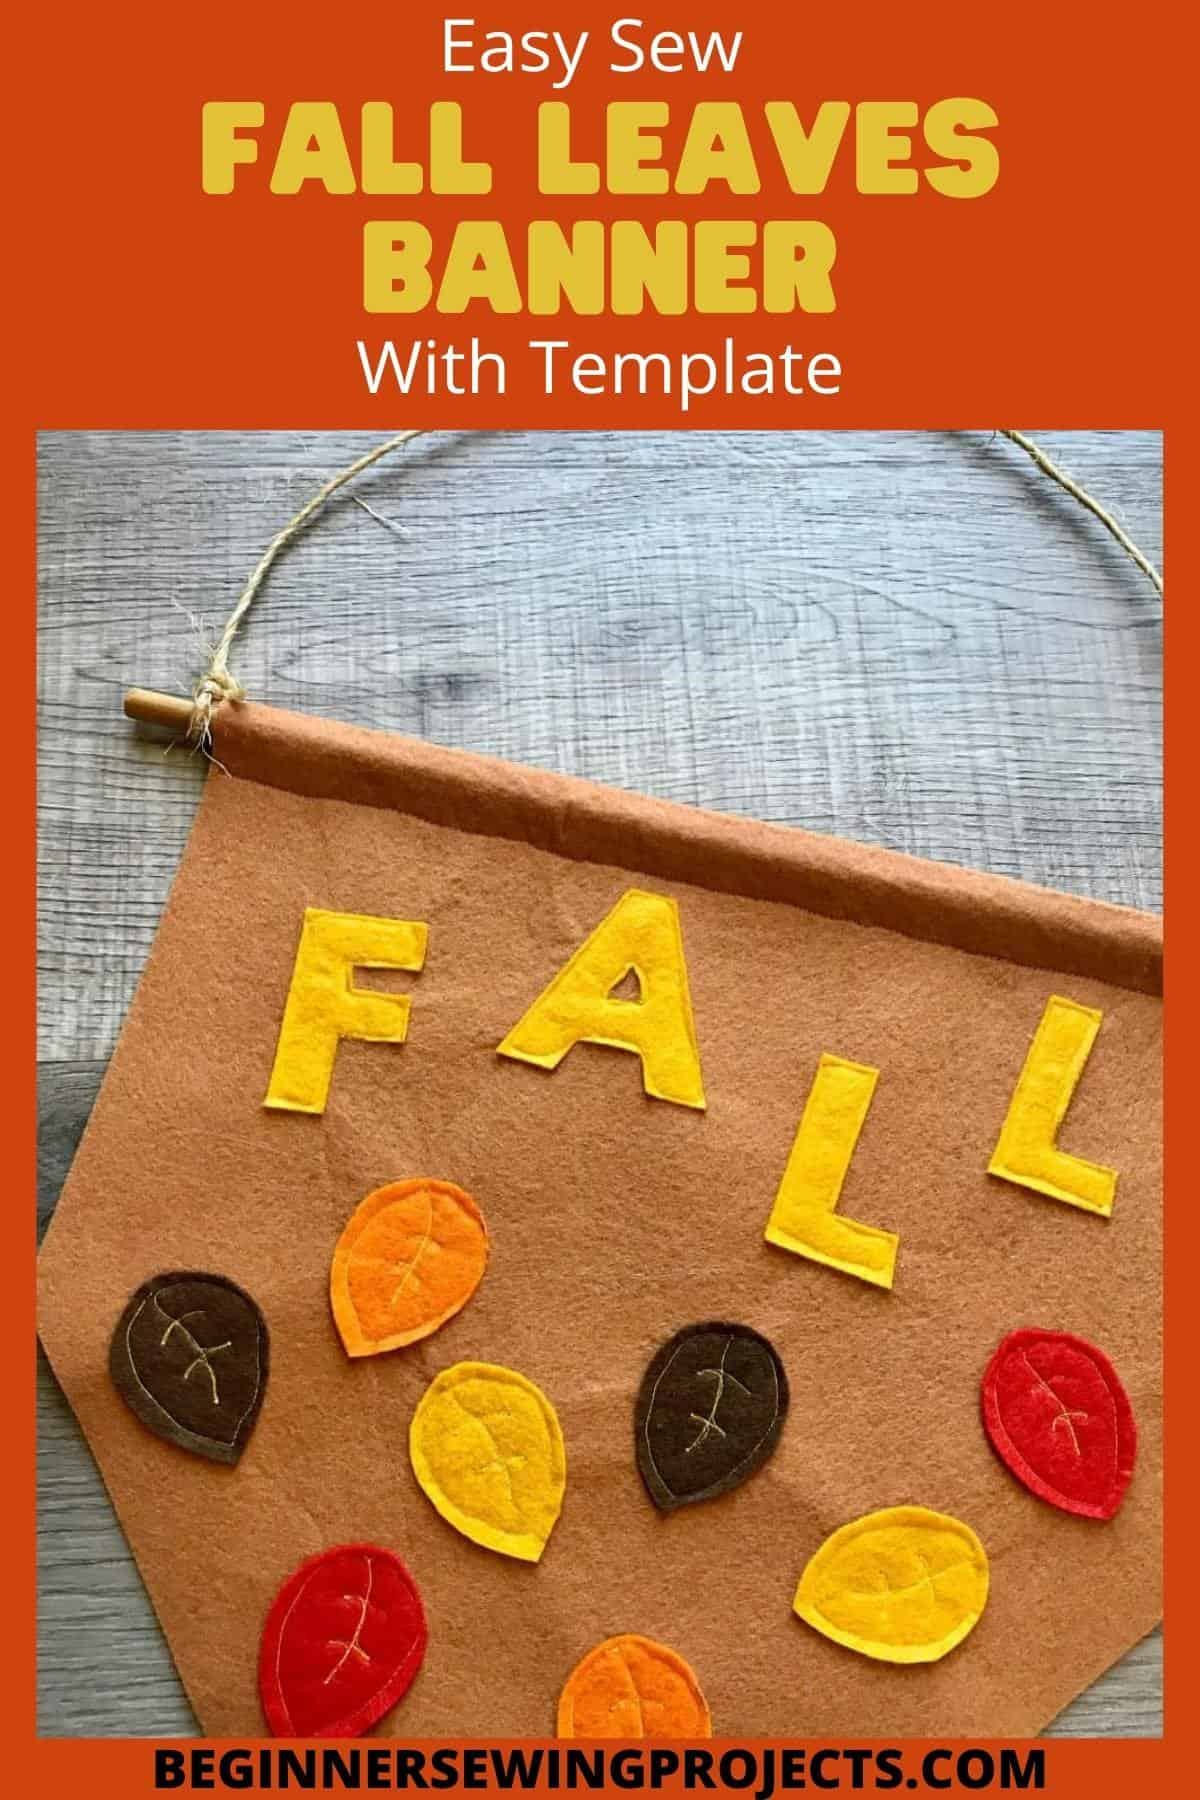 Easy Sew Fall Leaves Banner WIth Template